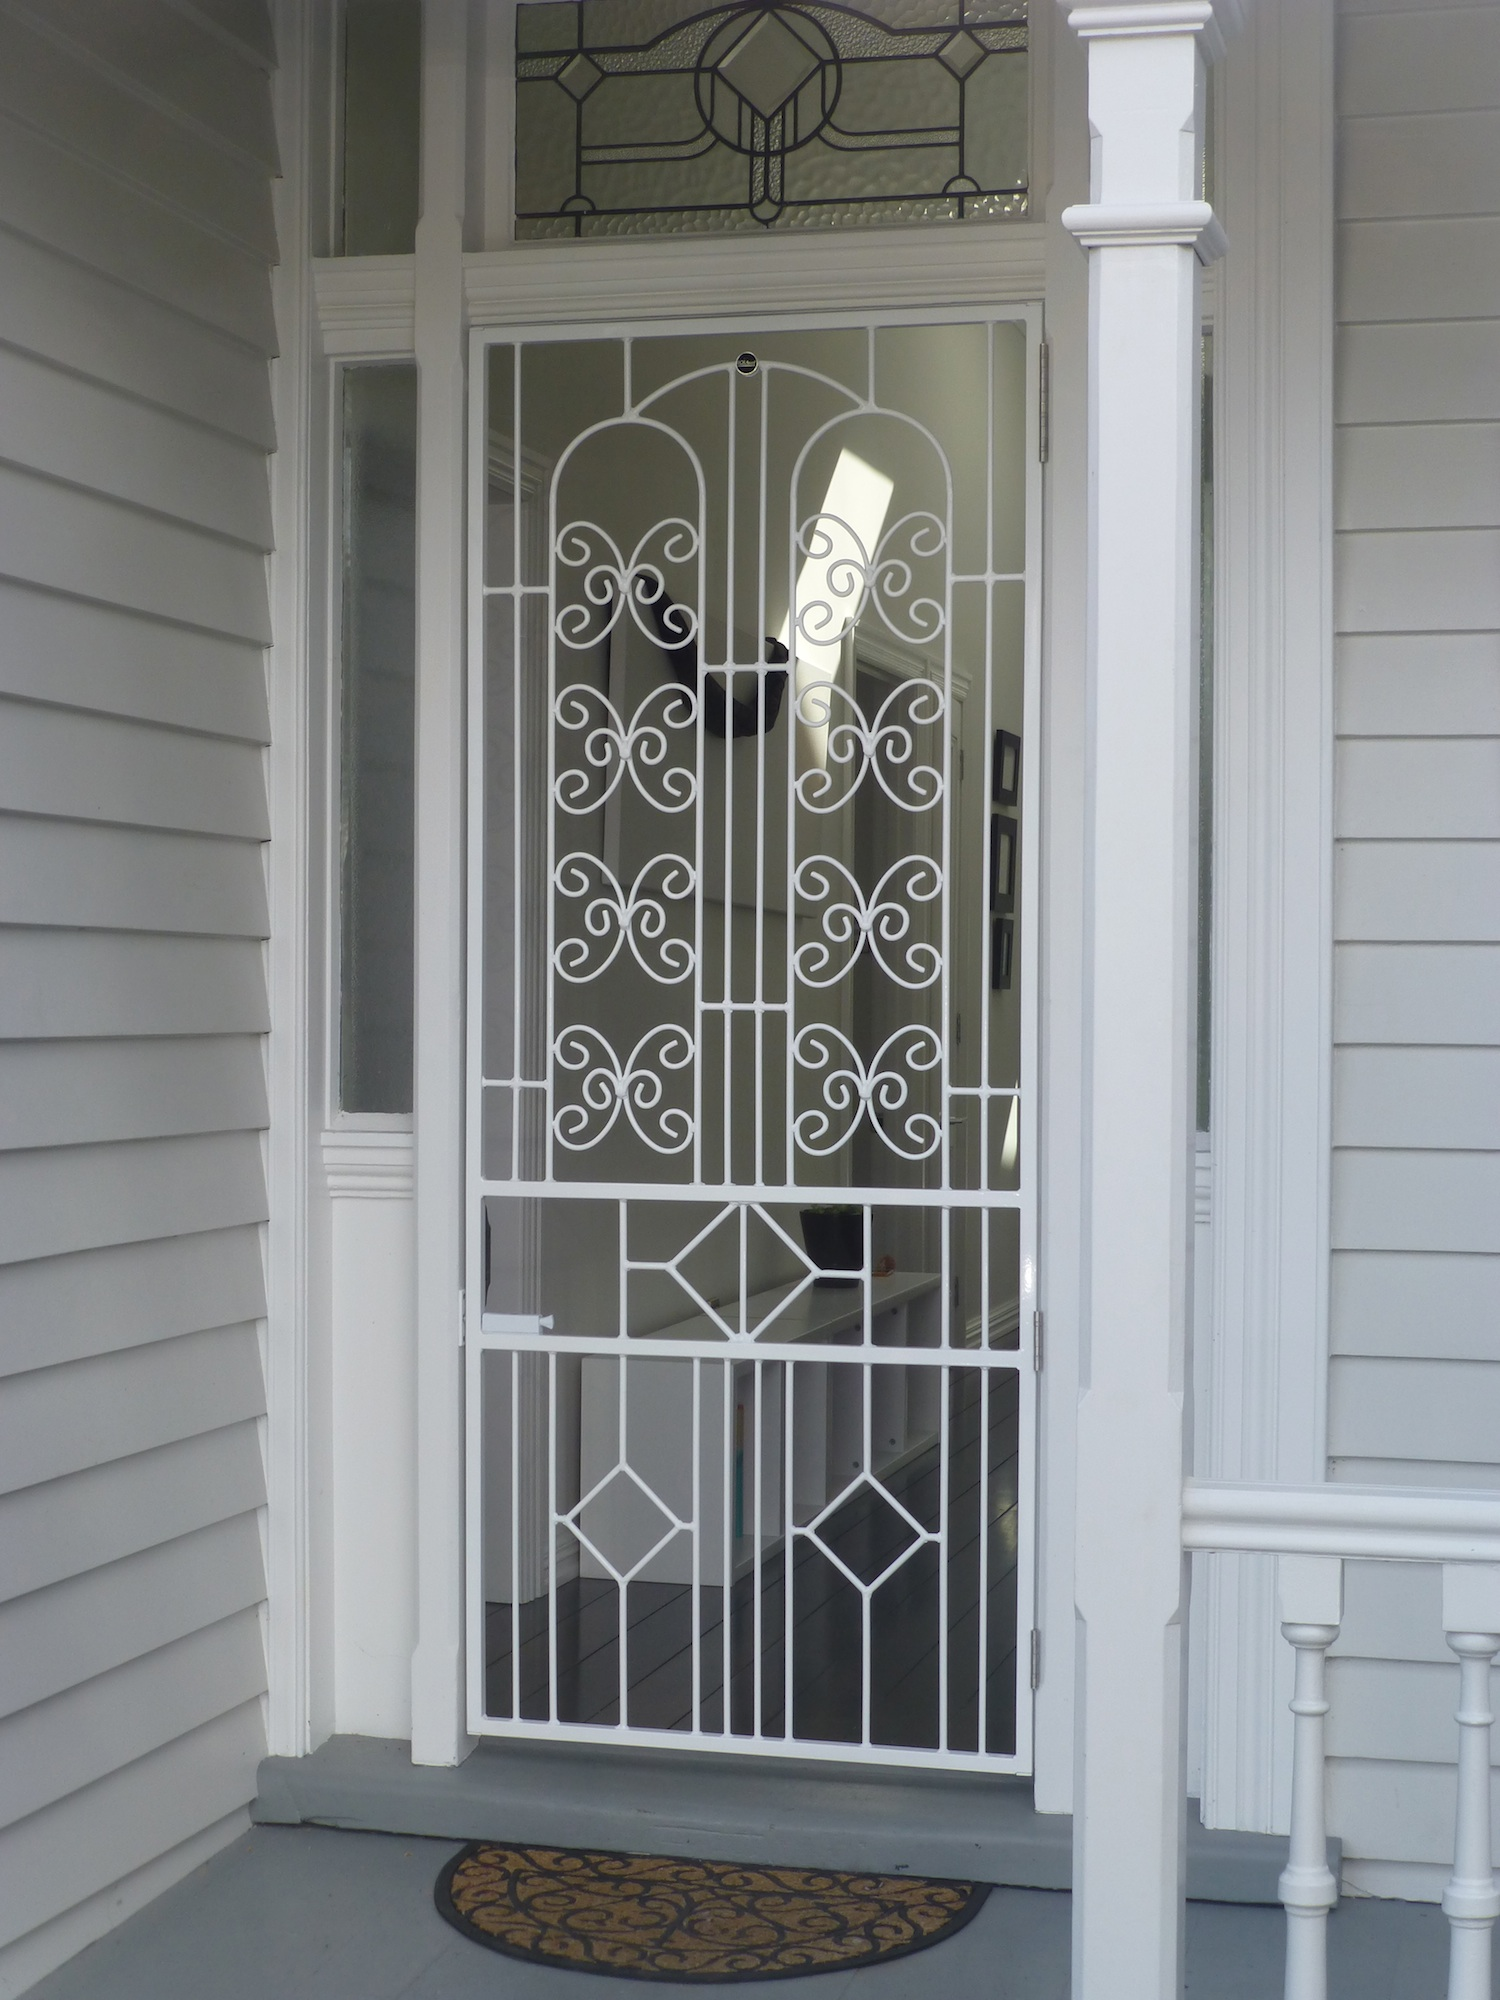 Dora doors designer security doors Grill main door design